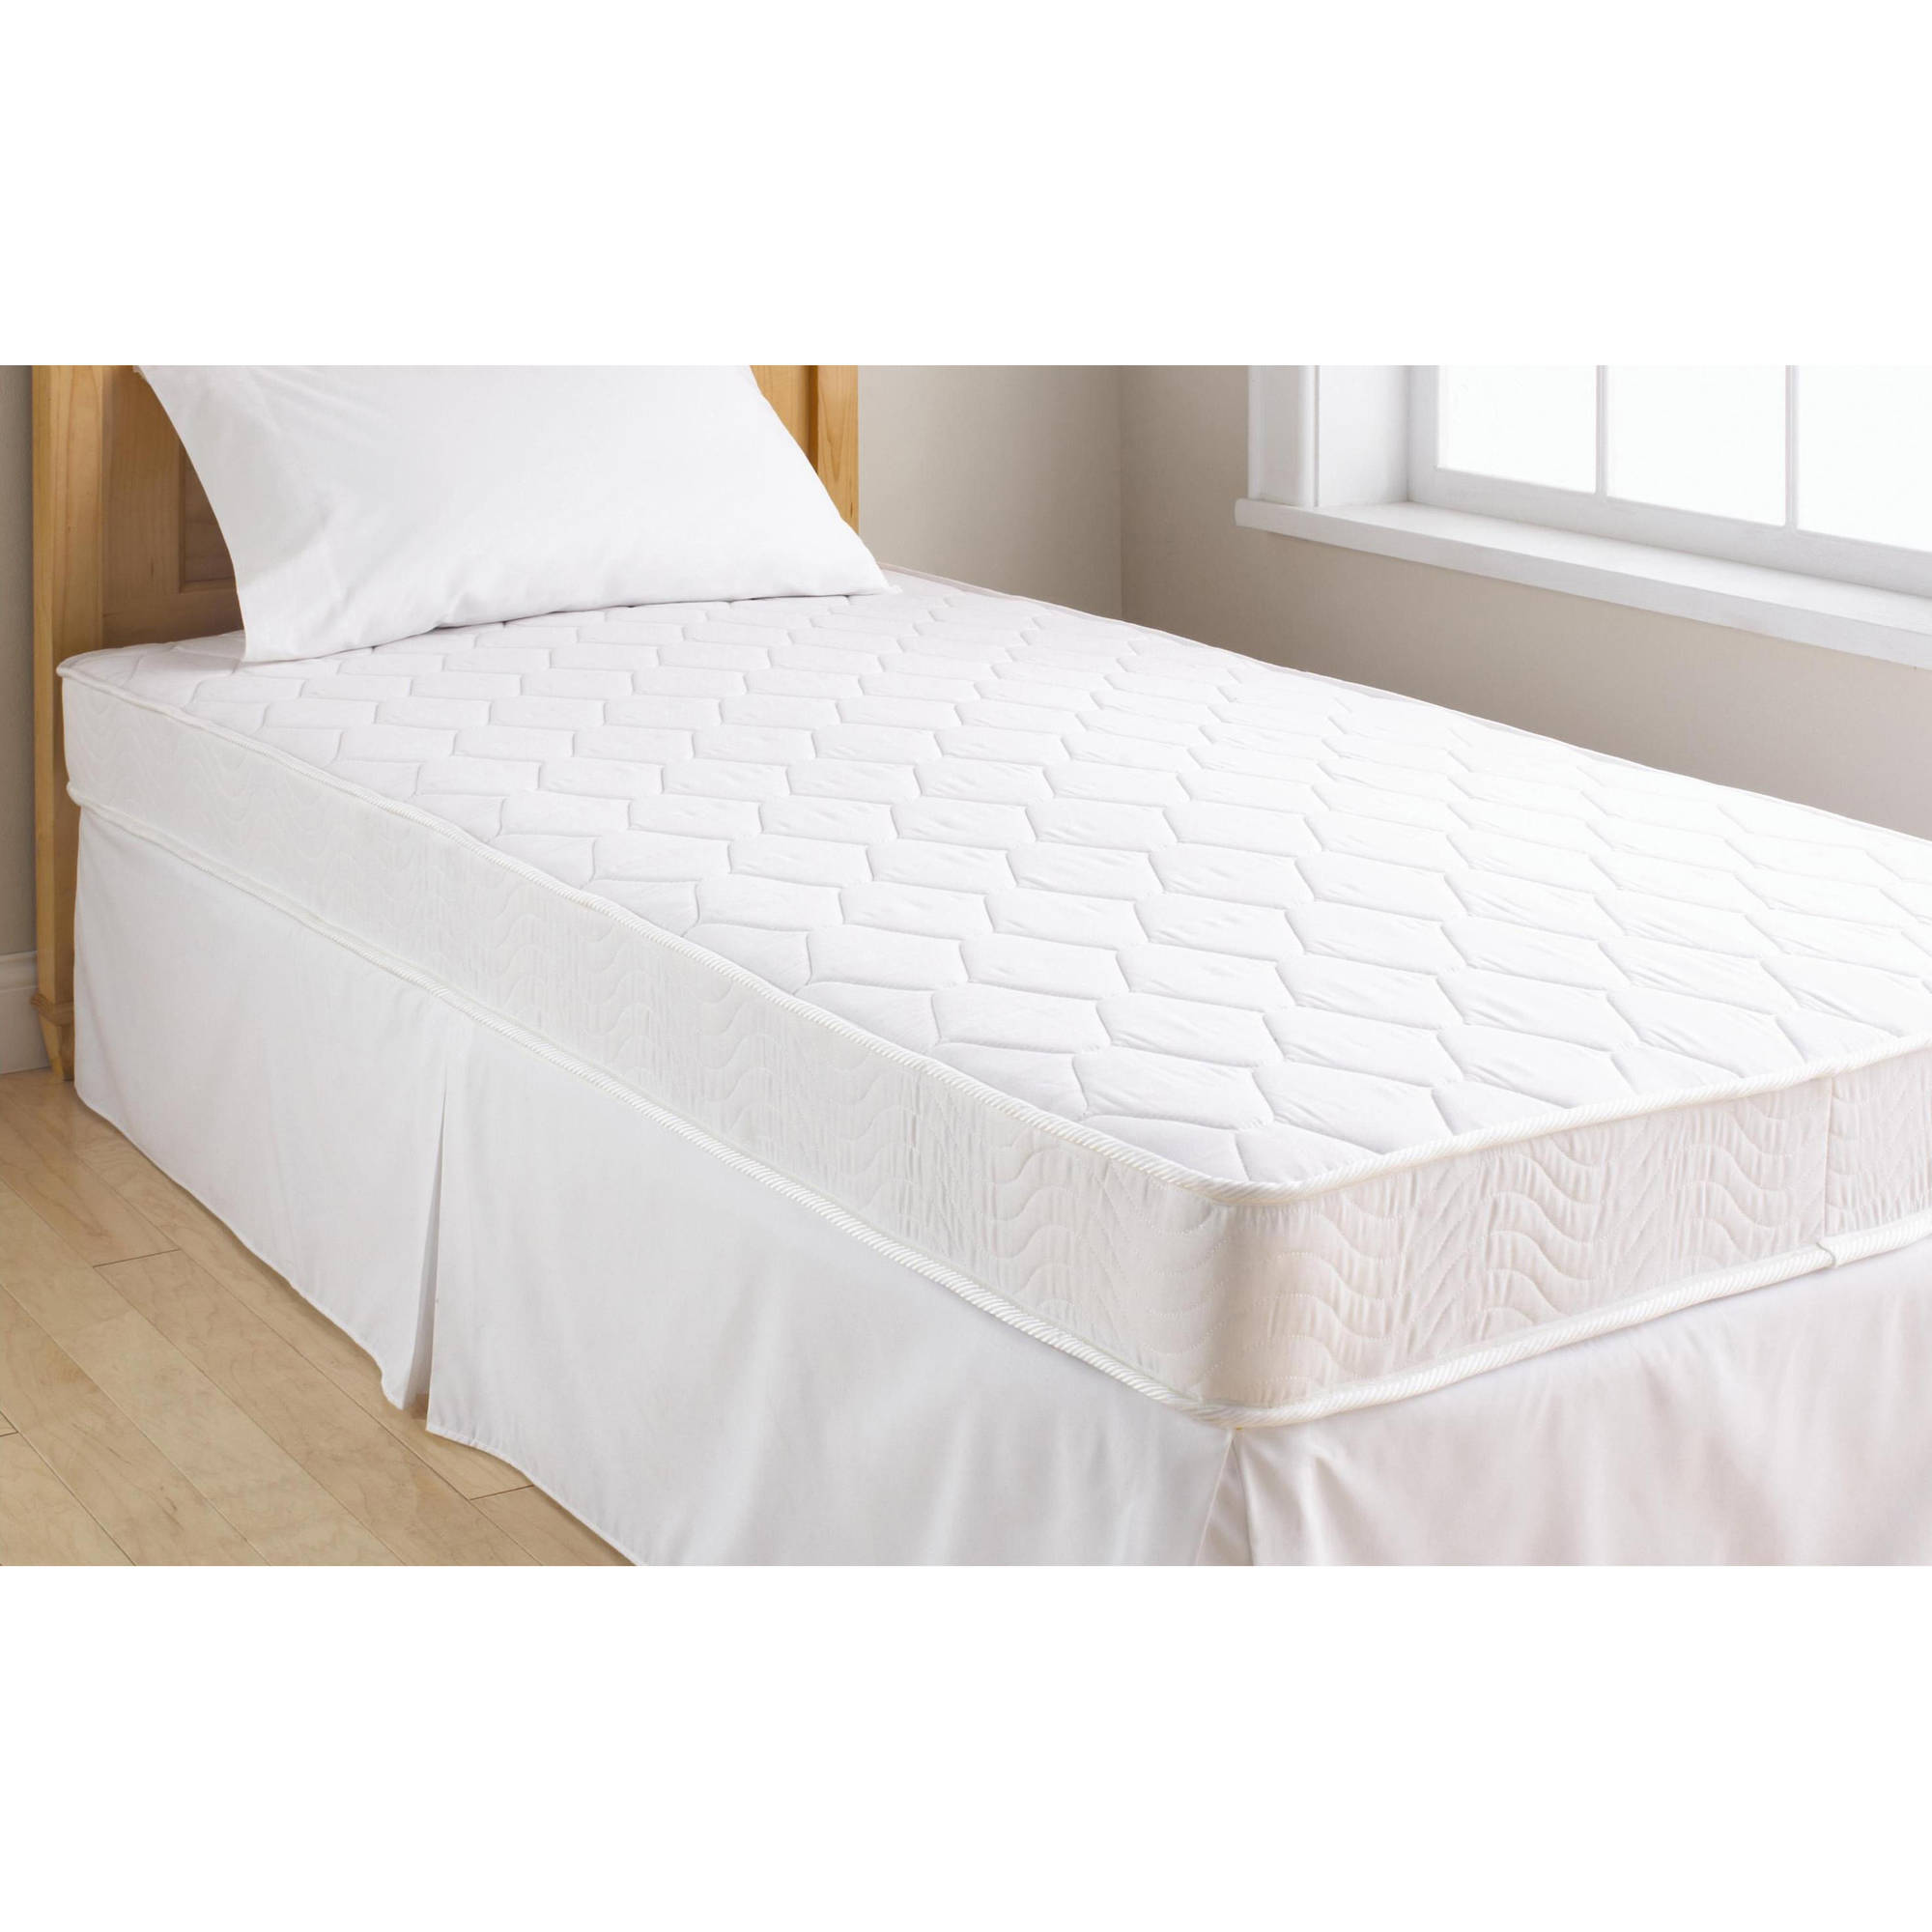 mainstays 6 coil mattress twin size and your choice of bedding set bundle ebay. Black Bedroom Furniture Sets. Home Design Ideas